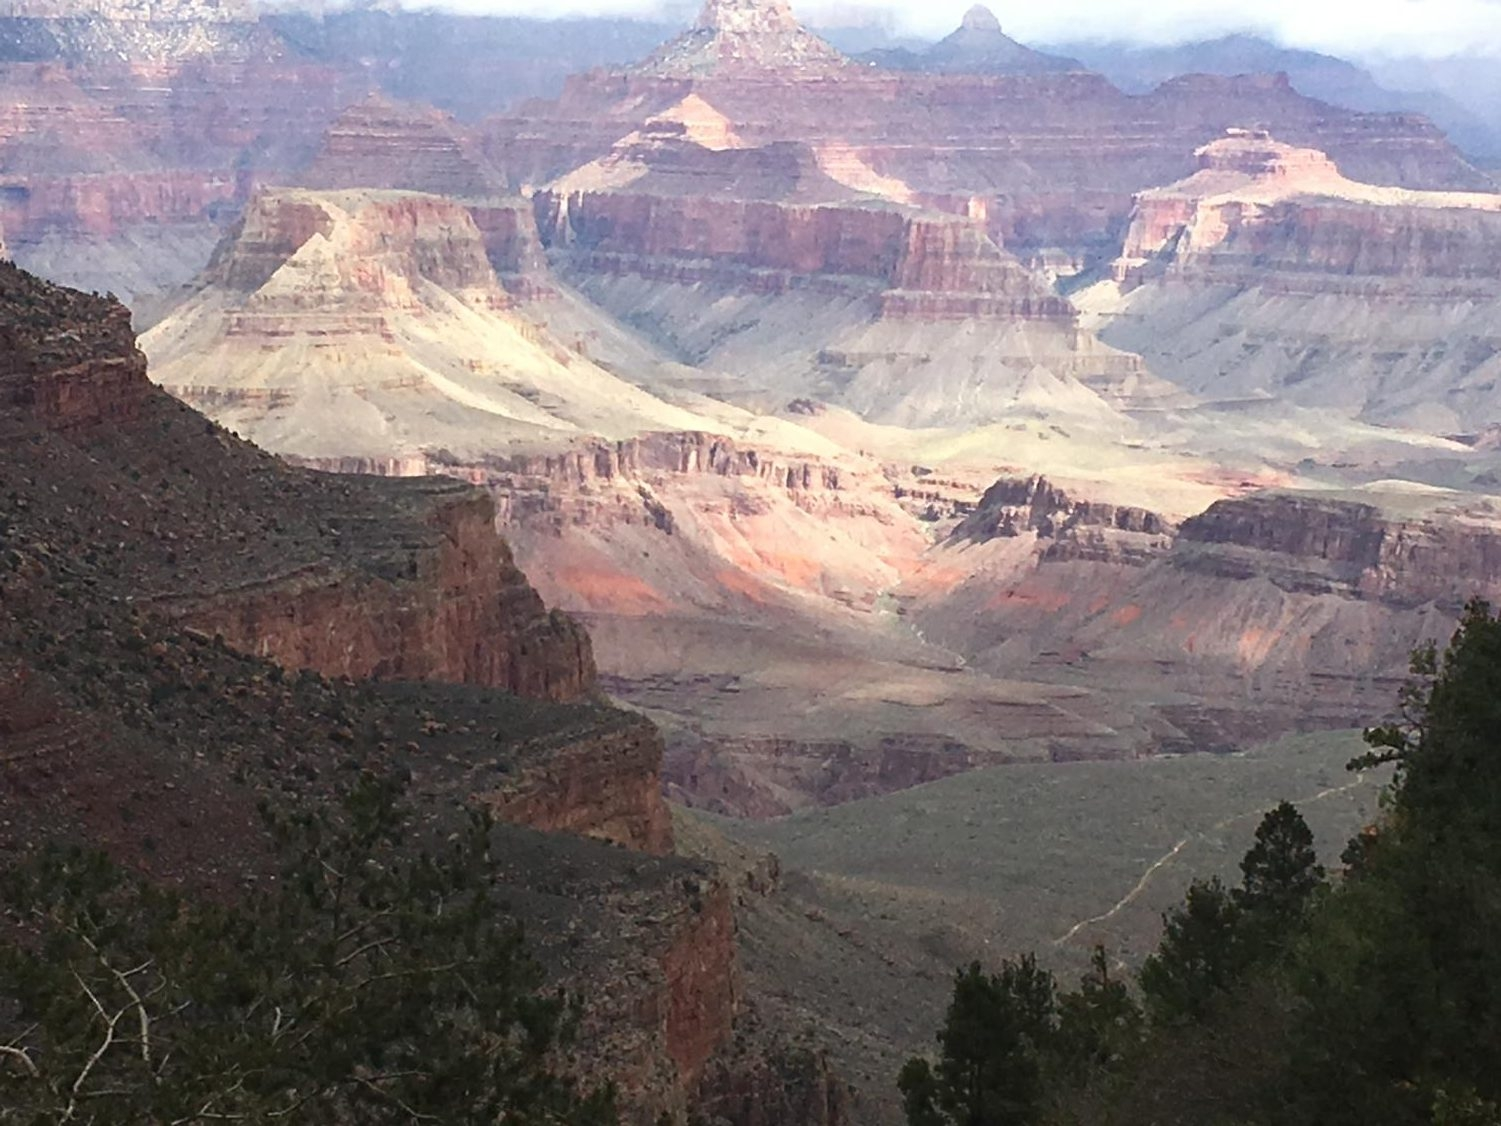 The main canyon is 277 miles long and 1 mile deep. It averages about 10 miles in width.